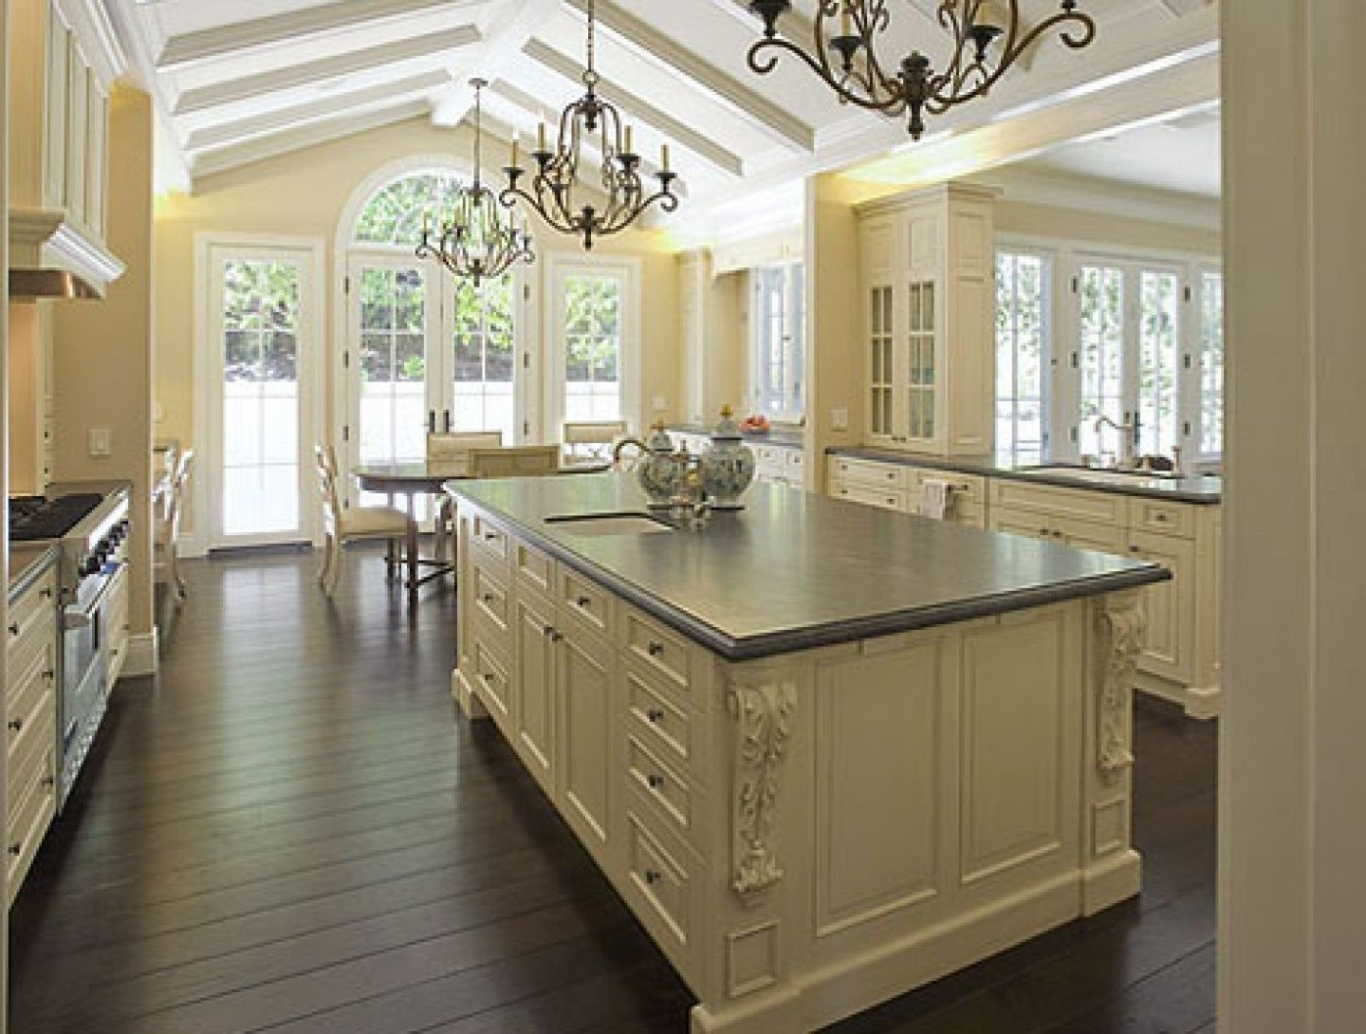 Country French Kitchens With Popular French Country Chandeliers For Kitchen (View 5 of 20)